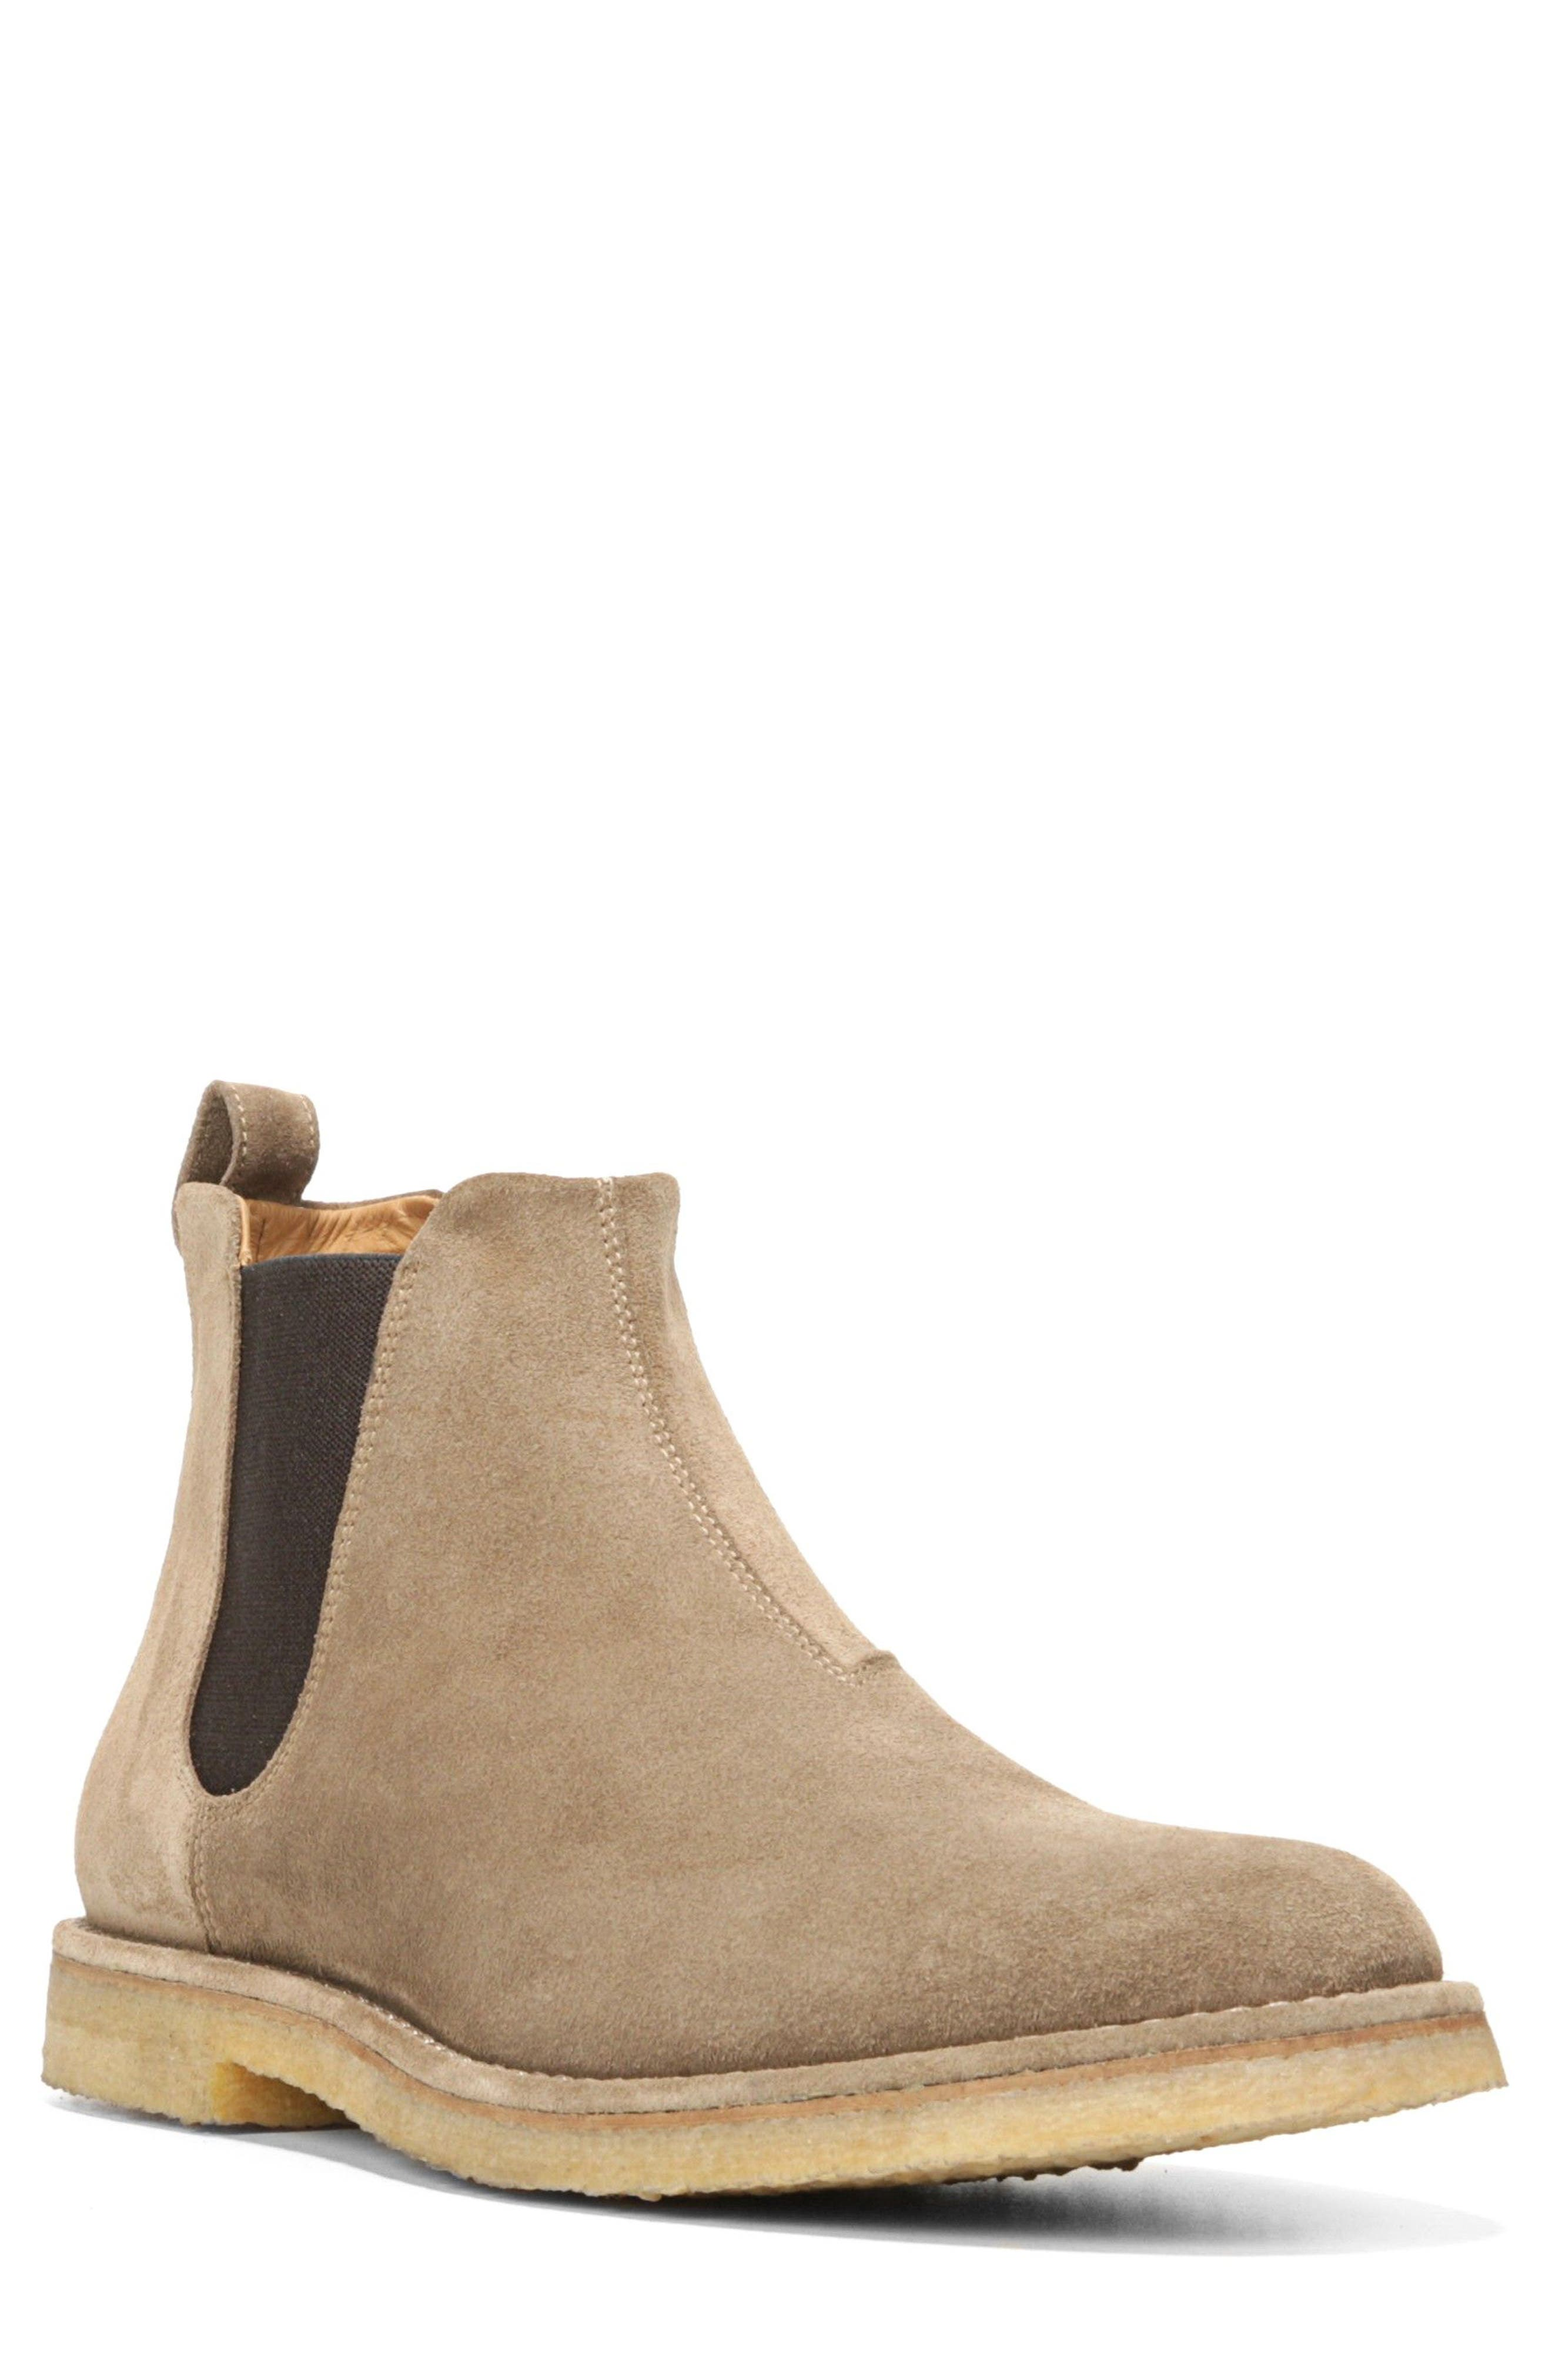 Alternate Image 1 Selected - Vince 'Sawyer' Chelsea Boot (Men)